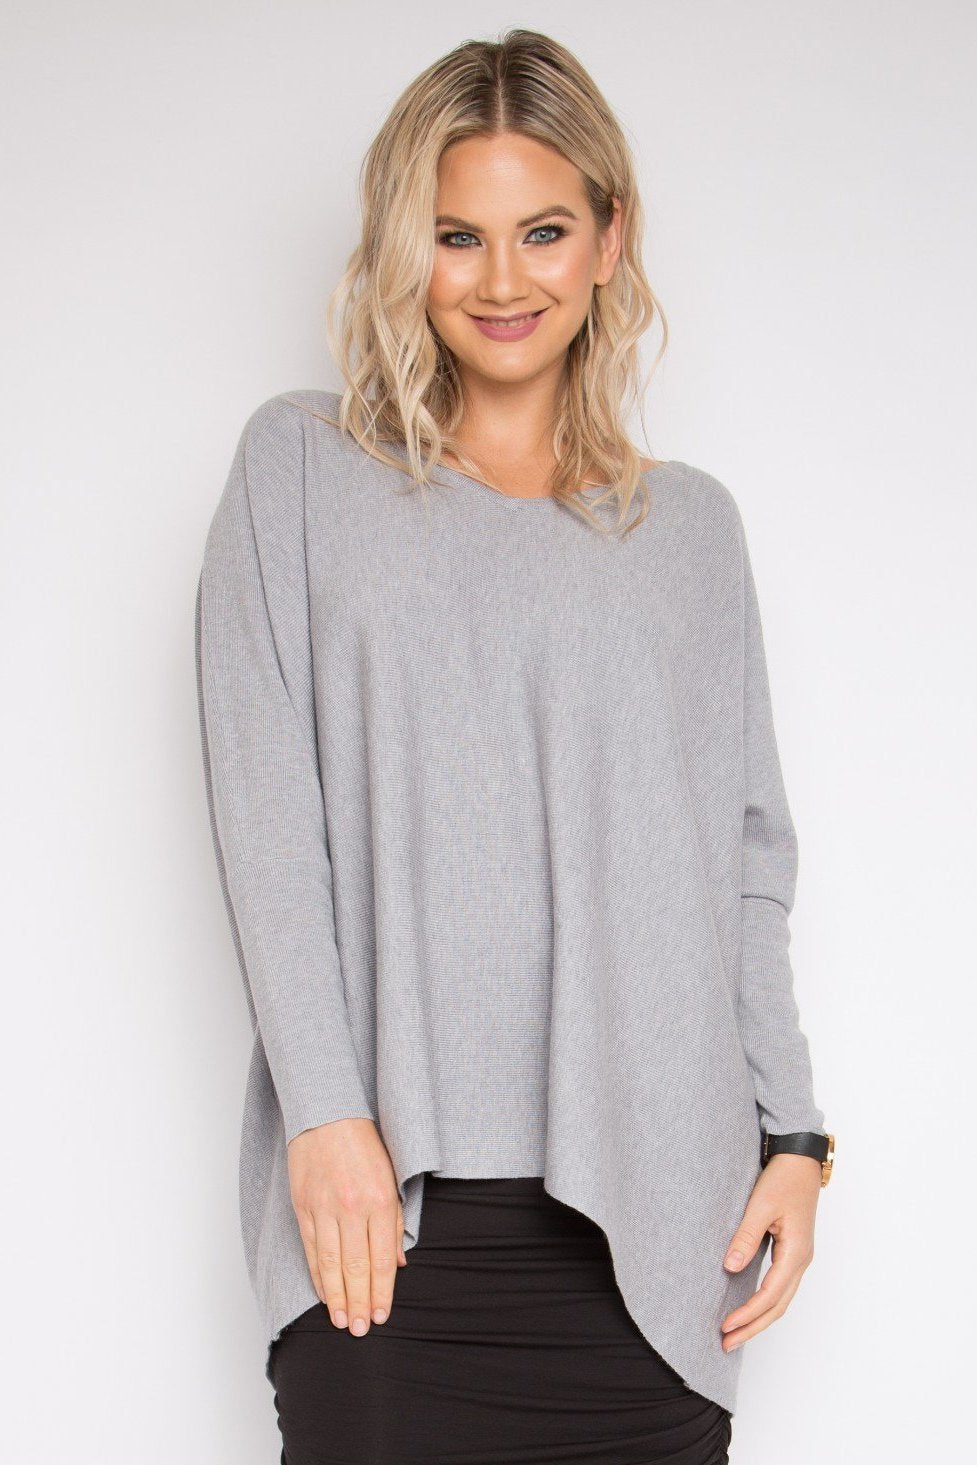 Everyday Knit Top in Ash